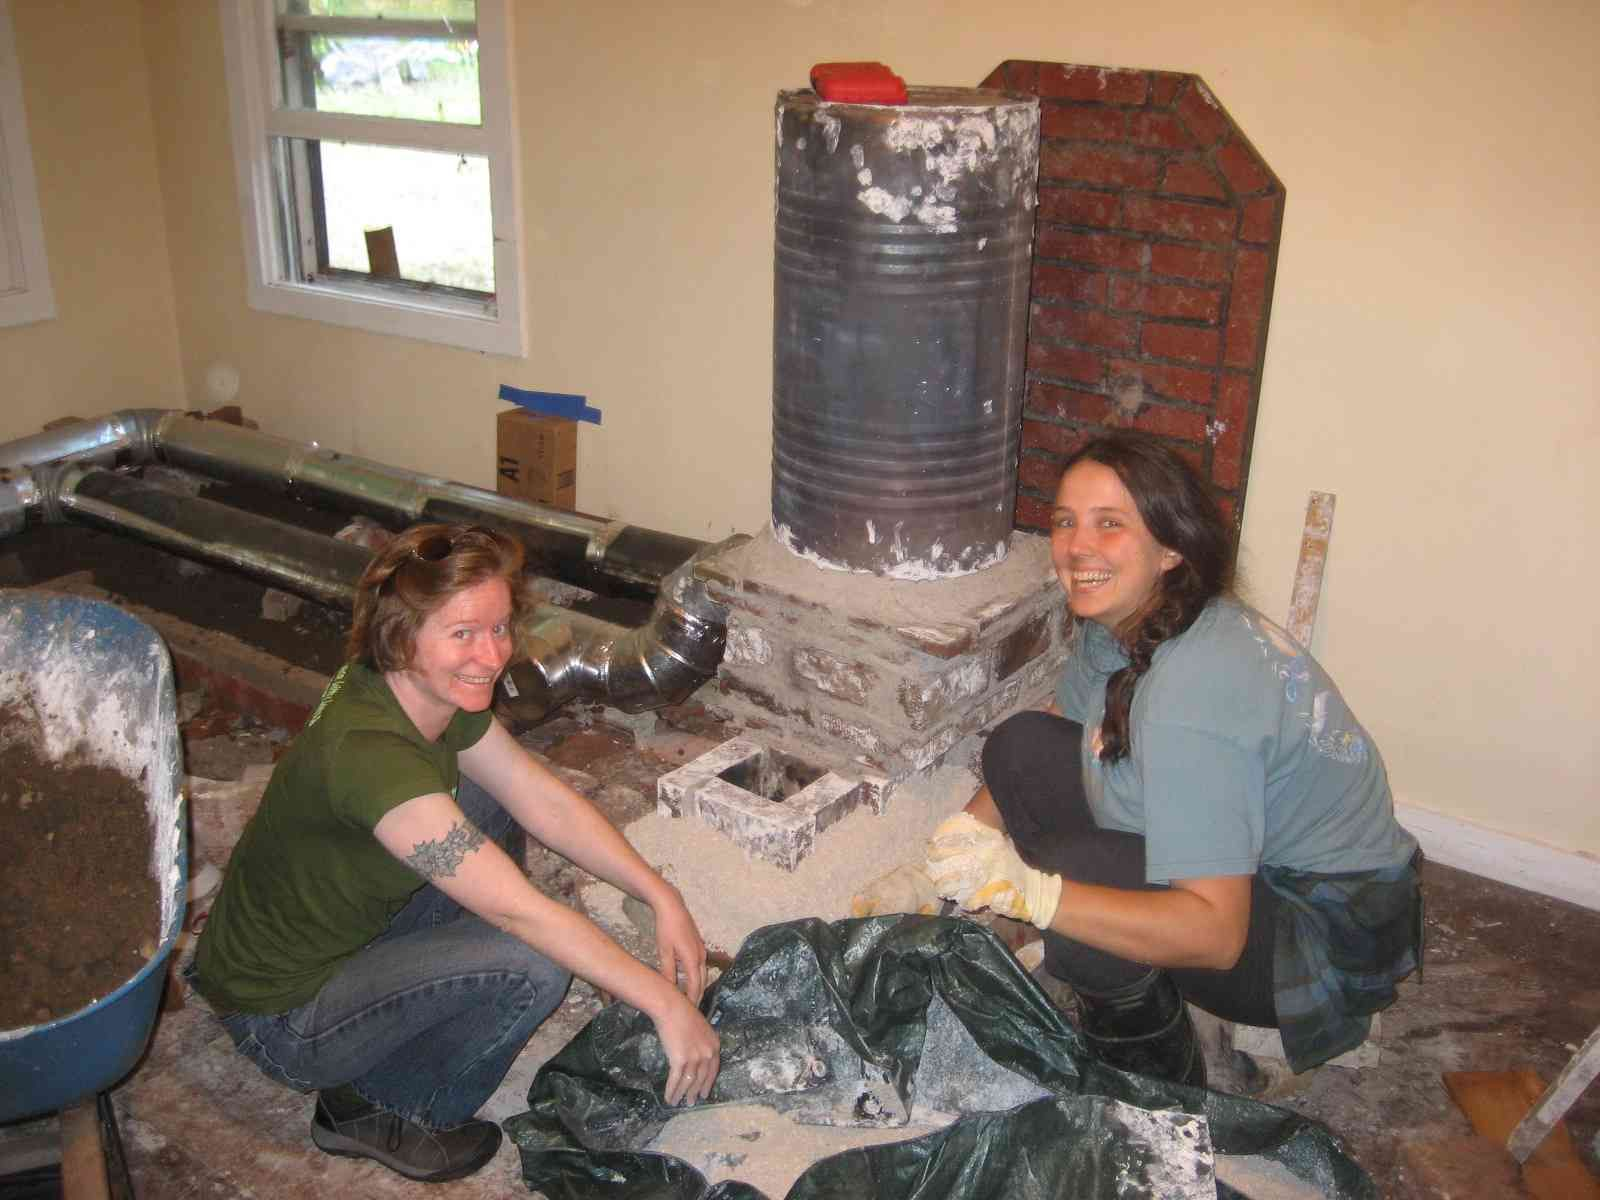 Build a wood stove build-it-yourself BIY advice